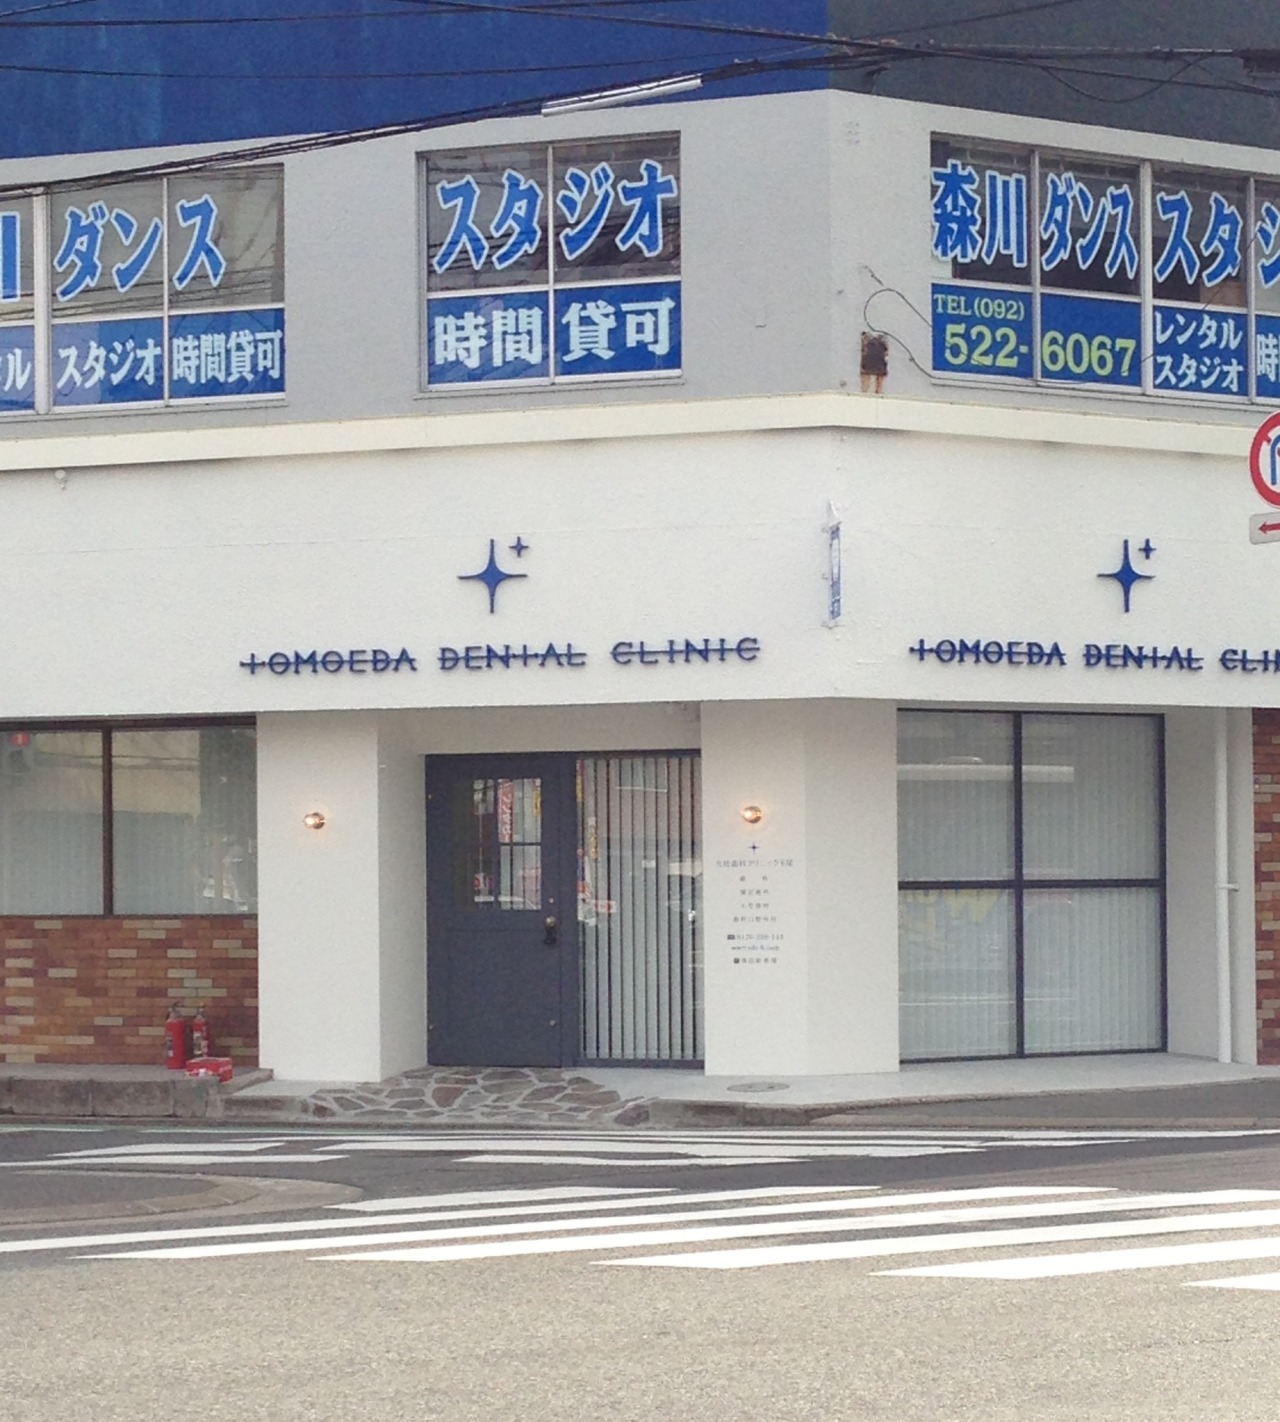 Dental Clinic Denial Clinic